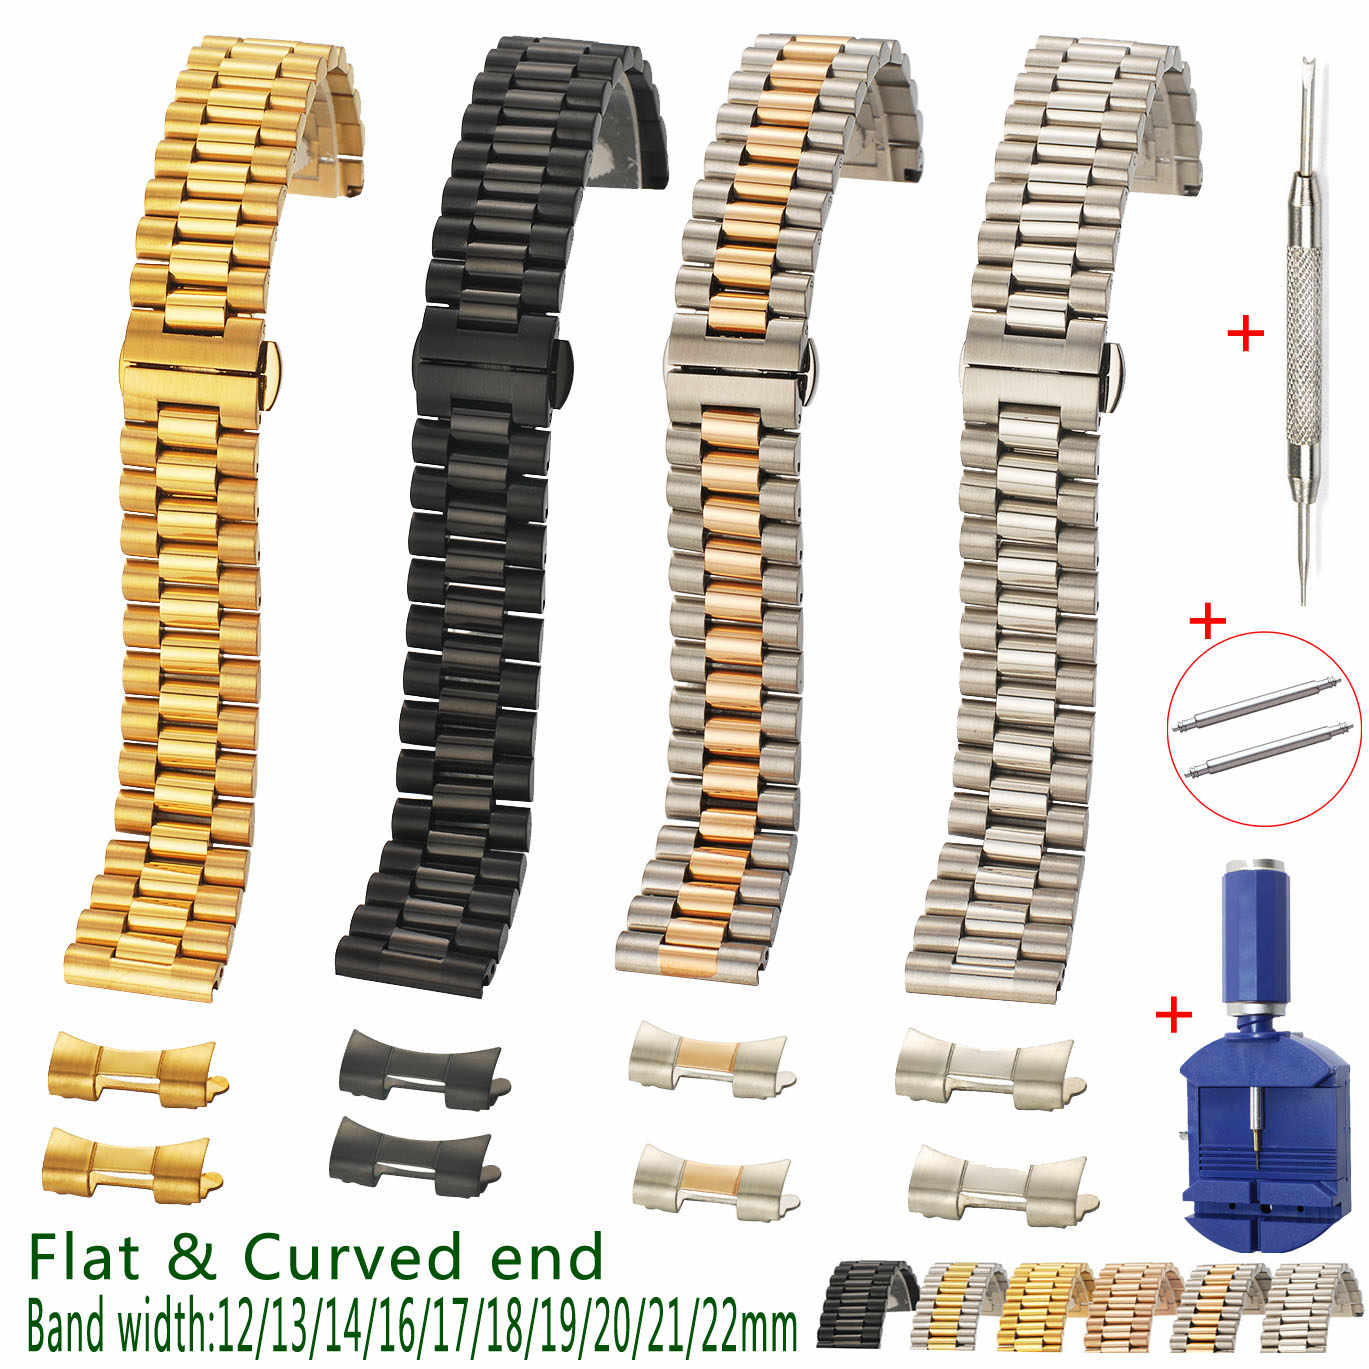 Lingkaran Link Solid Stainless Steel Watch Band 12 13 14 16 17 18 19 20 21 22 Mm Pengganti tali 3 Baris Gratis Ujung Melengkung